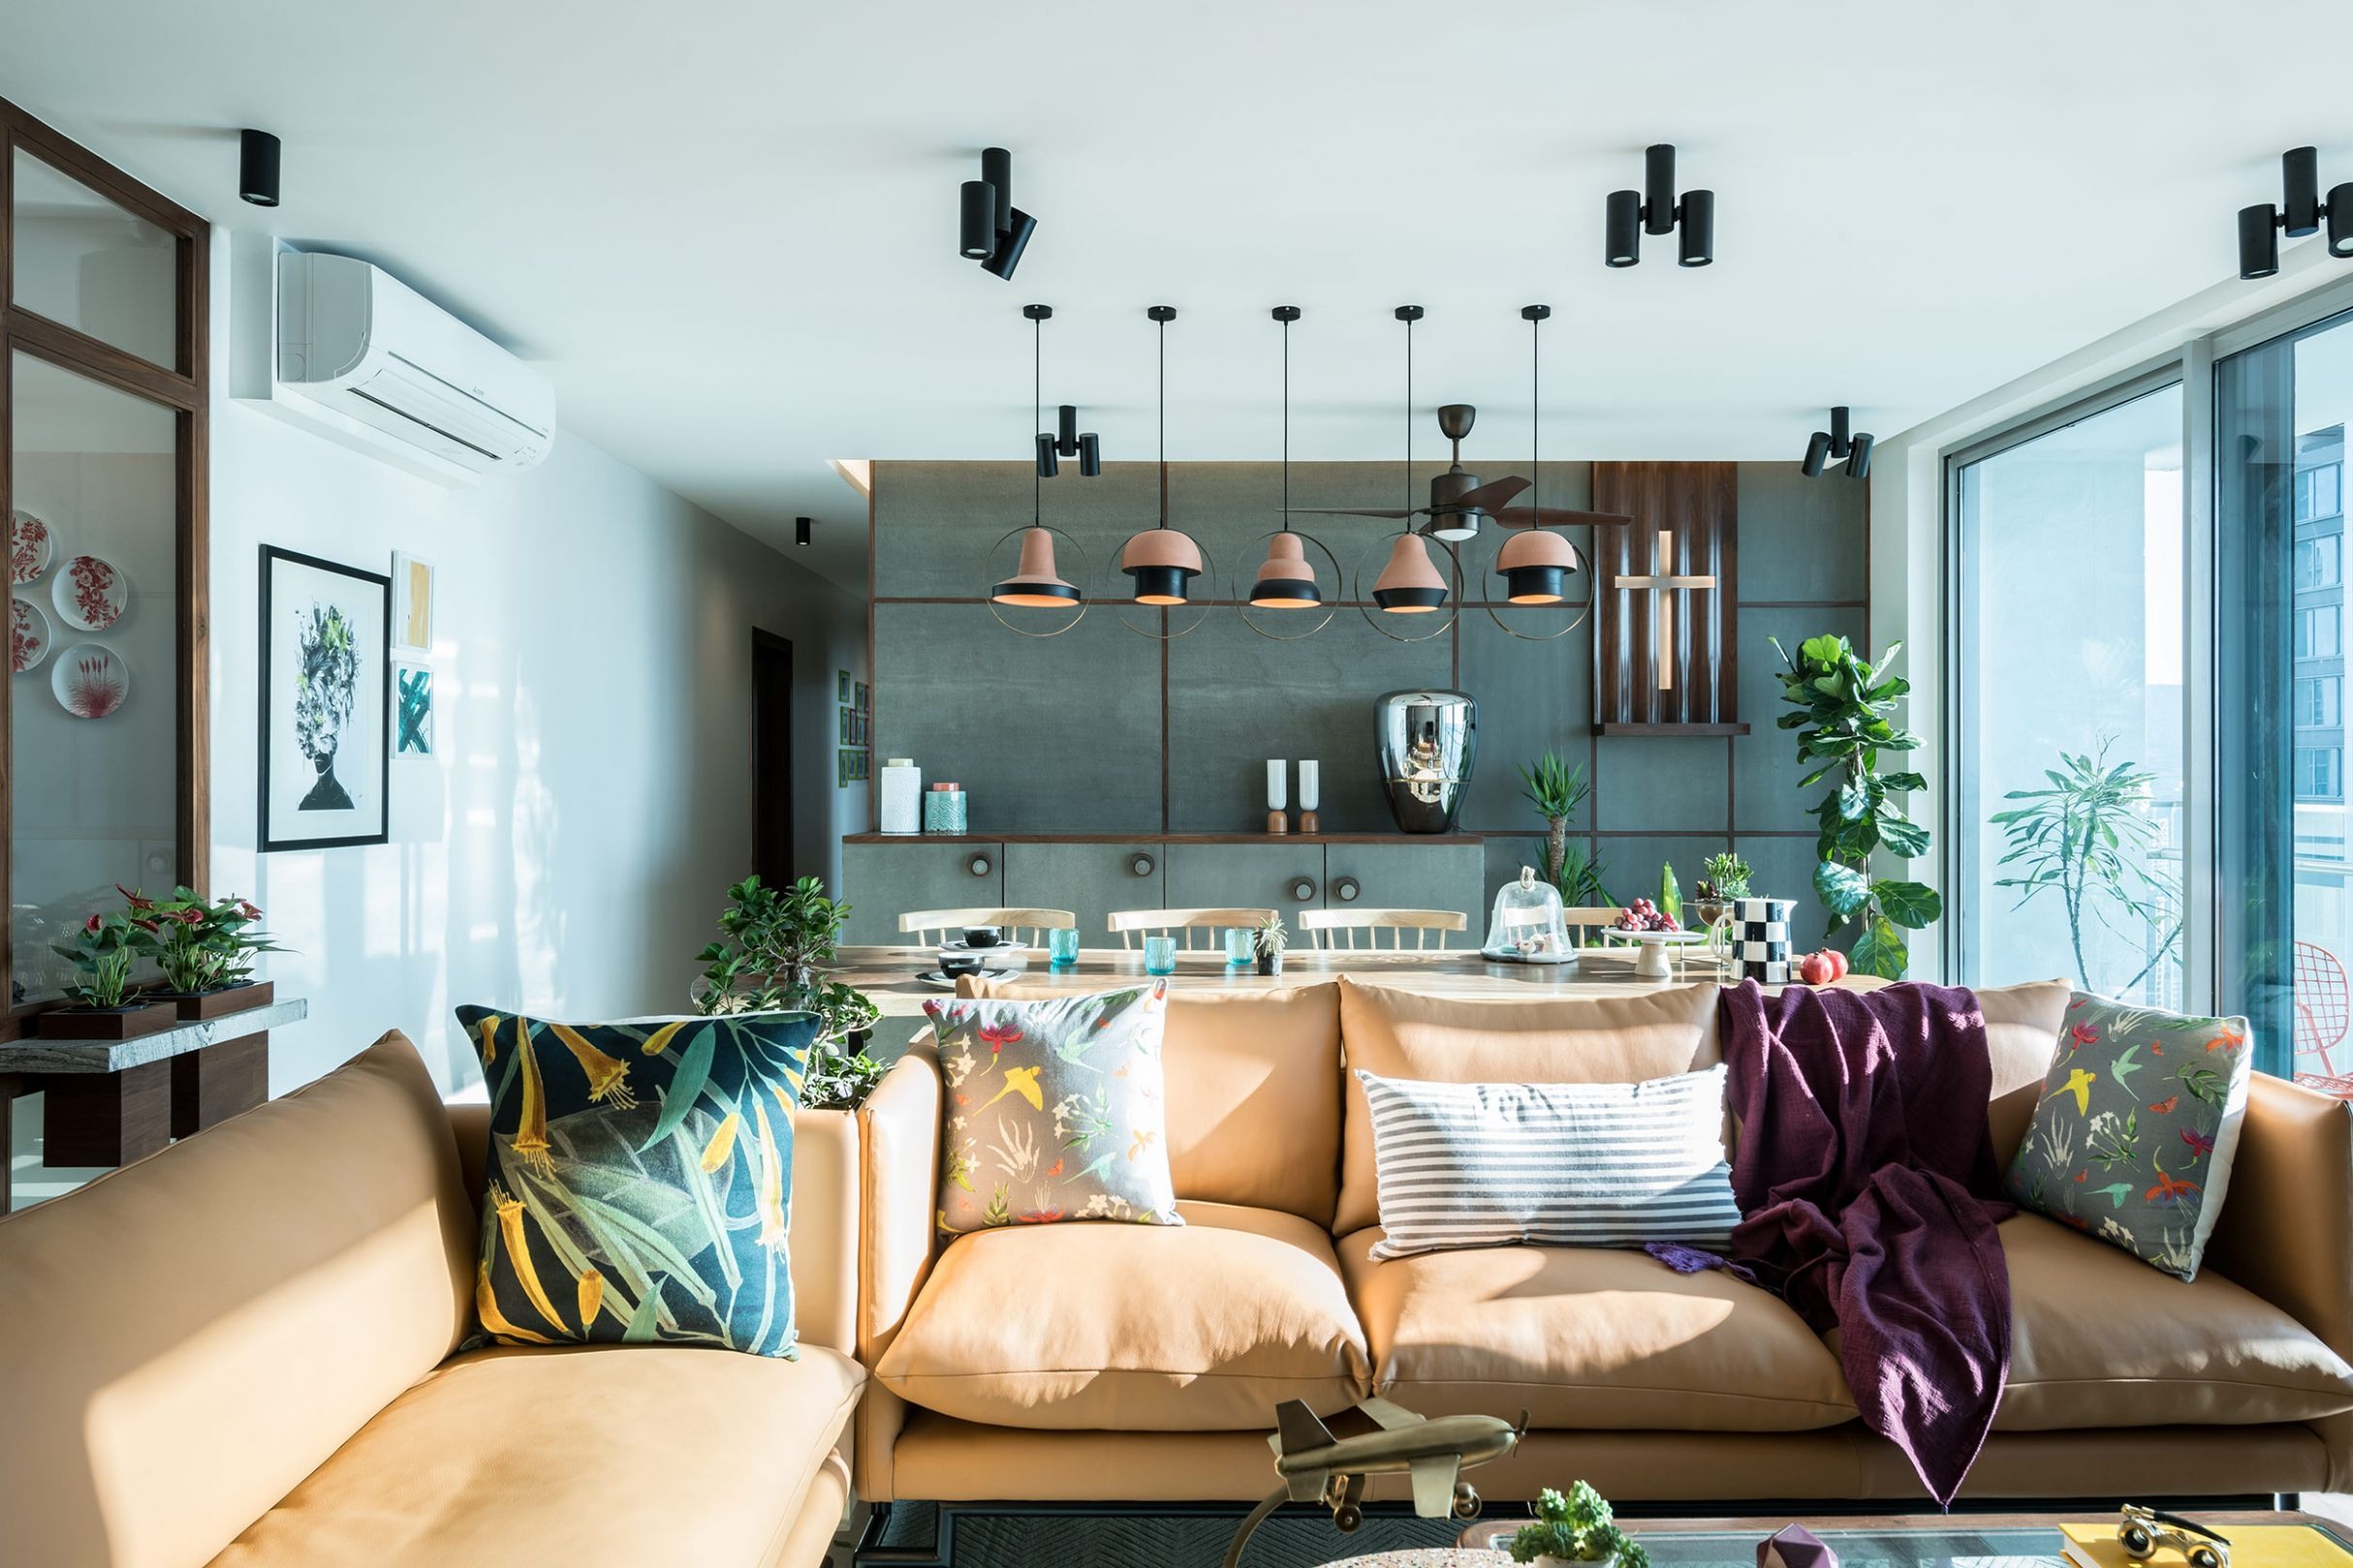 Living Room Design: 11 most stunning spaces to steal ideas from